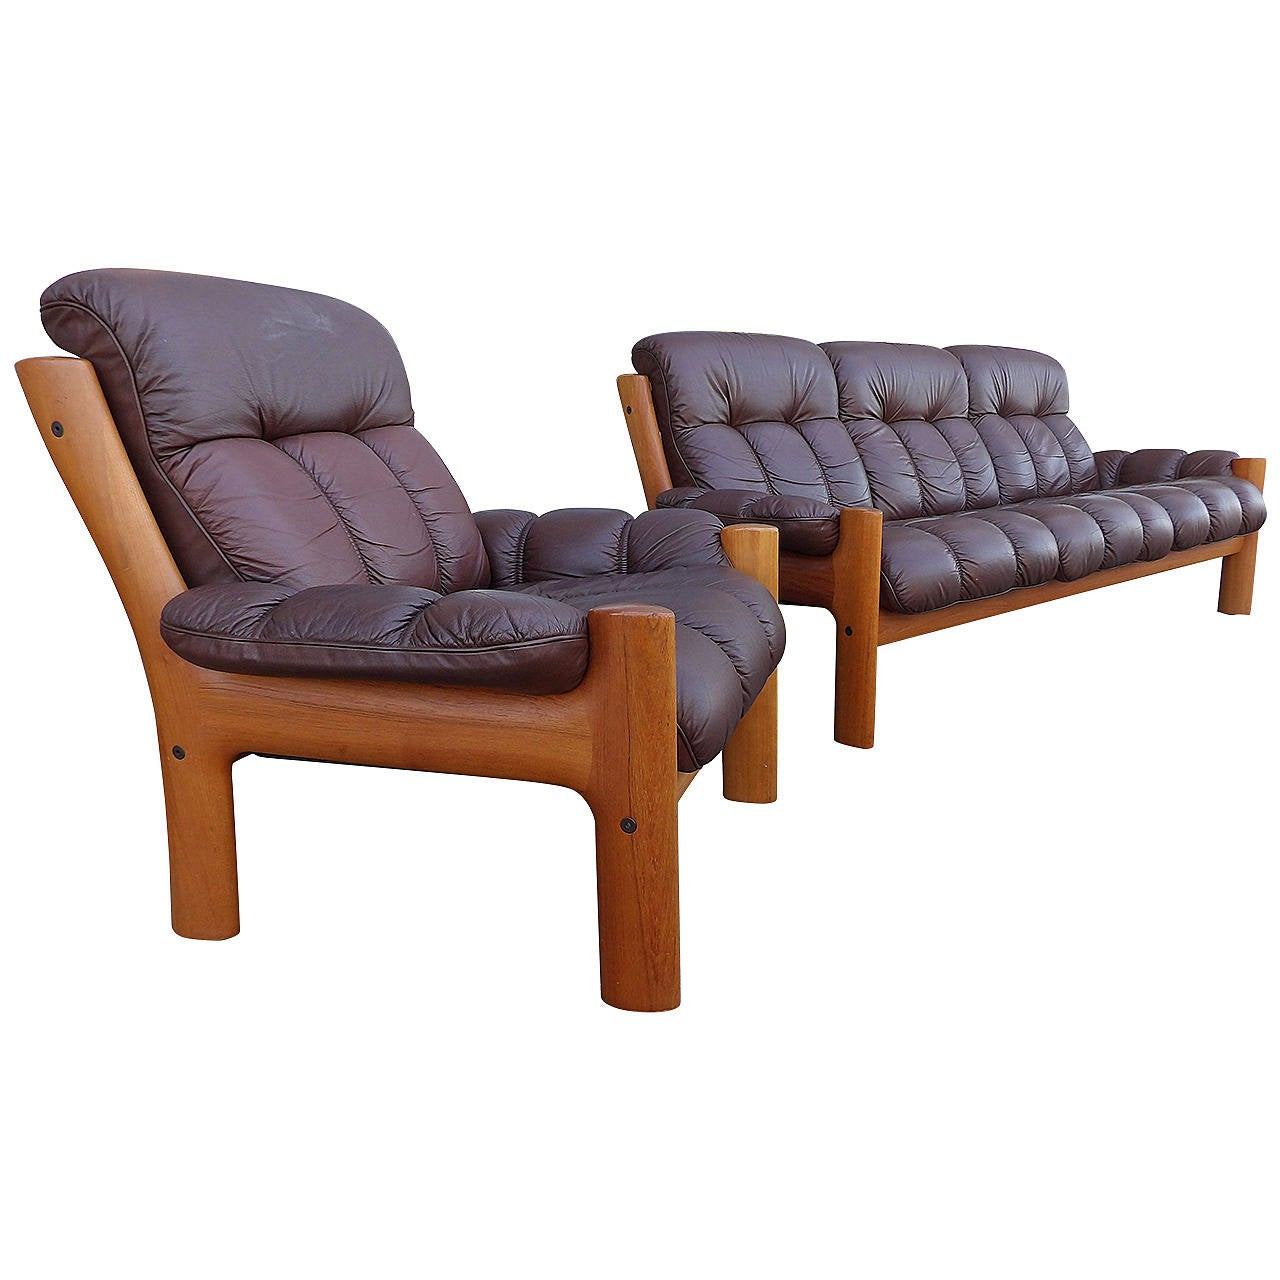 Teak Scandinavian Modern Leather Sofa And Lounge Chair At 1stdibs